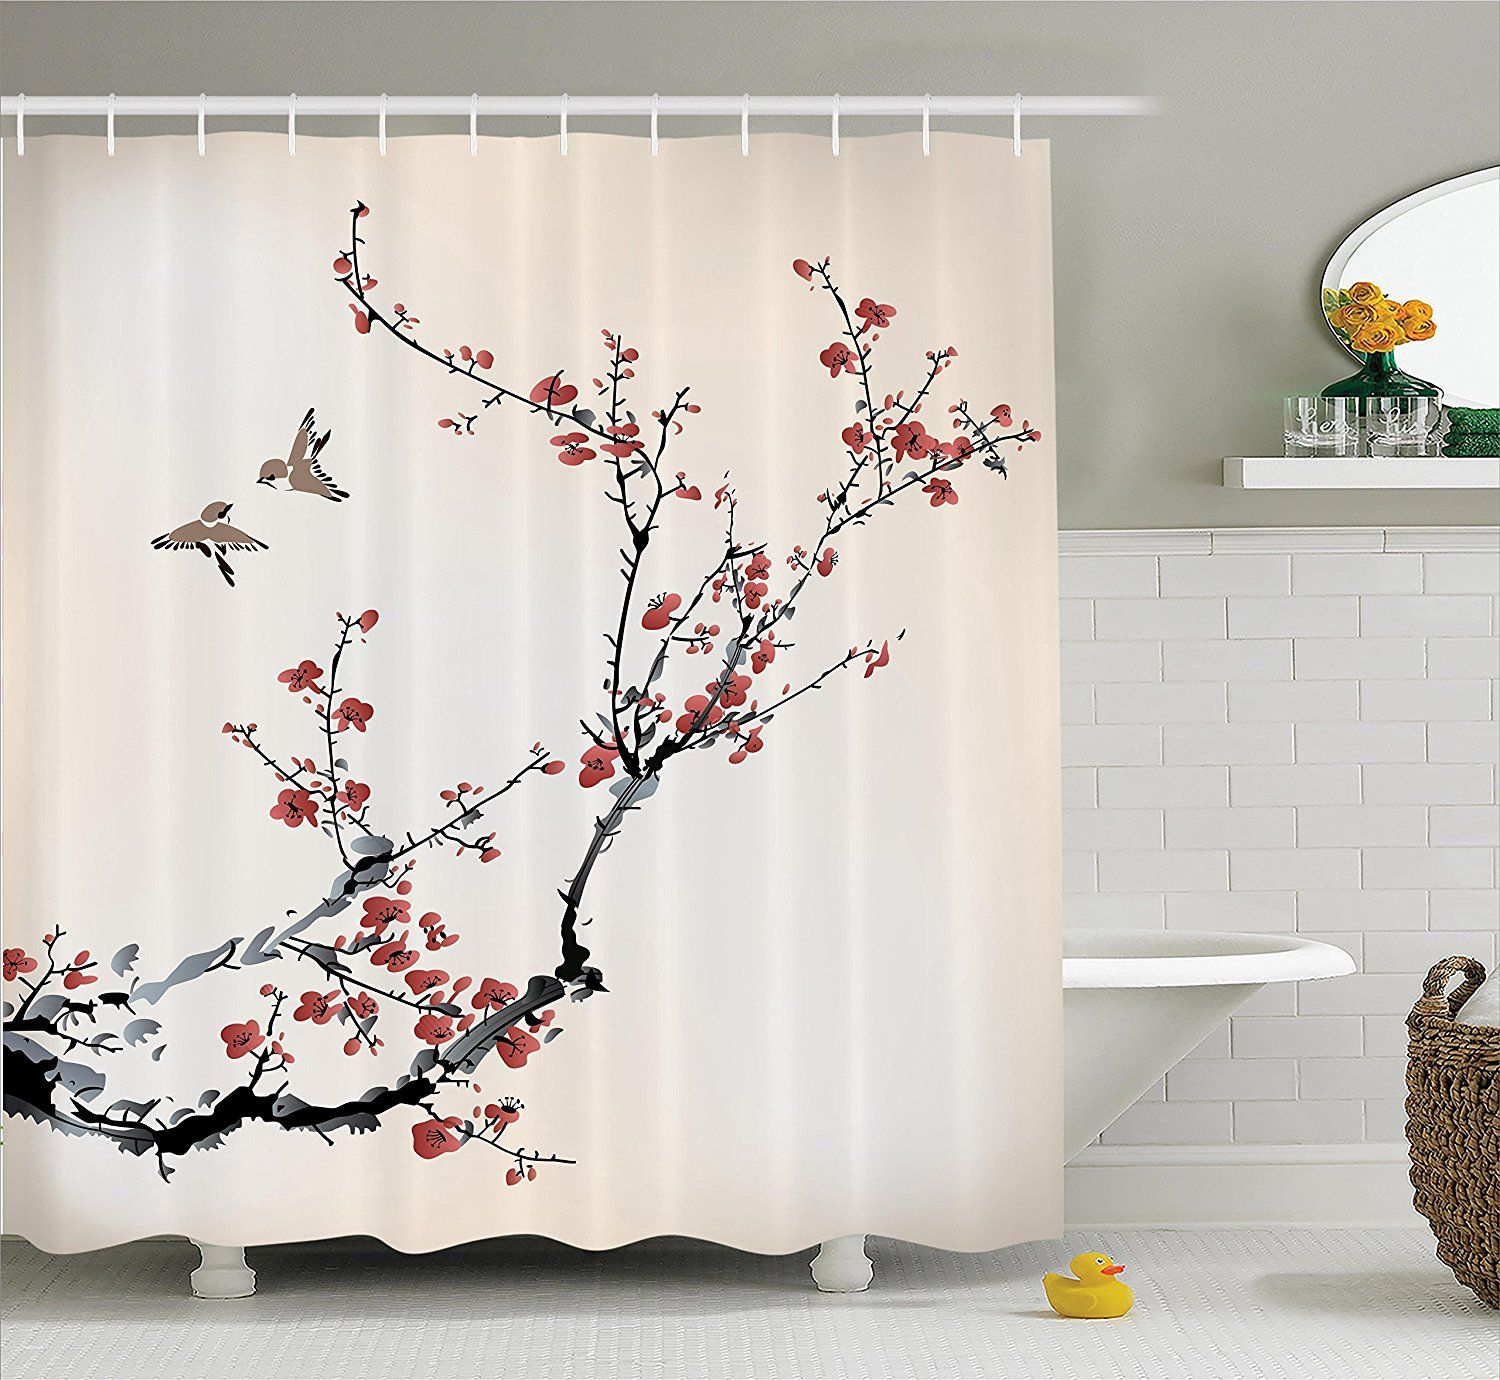 Amazon Com Cherry Blossom Shower Curtain Decor By Ambesonne Cherry Branches Flowers Buds And Birds Asian Style Artwork With Painting Effect Bathroom Decor Sets